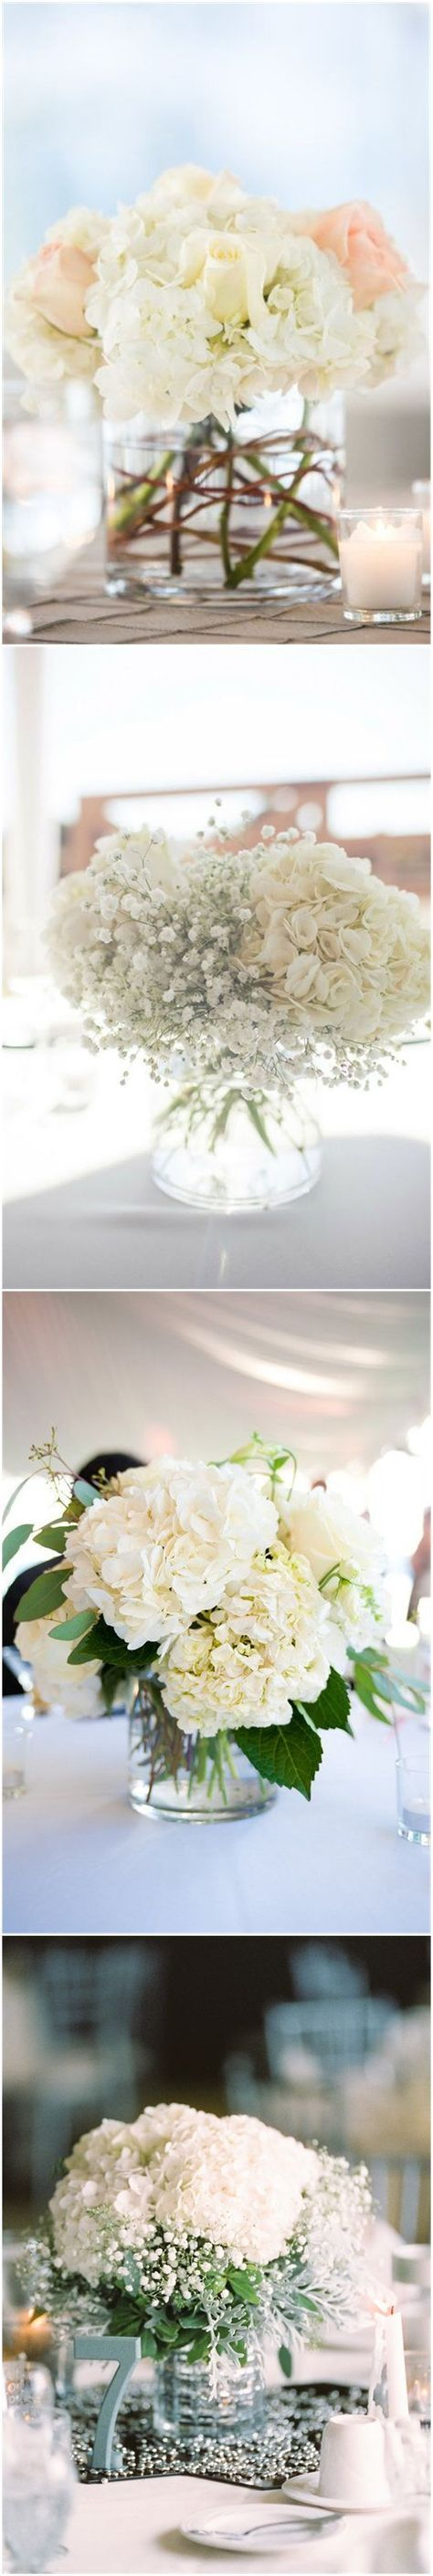 21 Simple Yet Rustic DIY Hydrangea Wedding Centerpieces Ideas ...